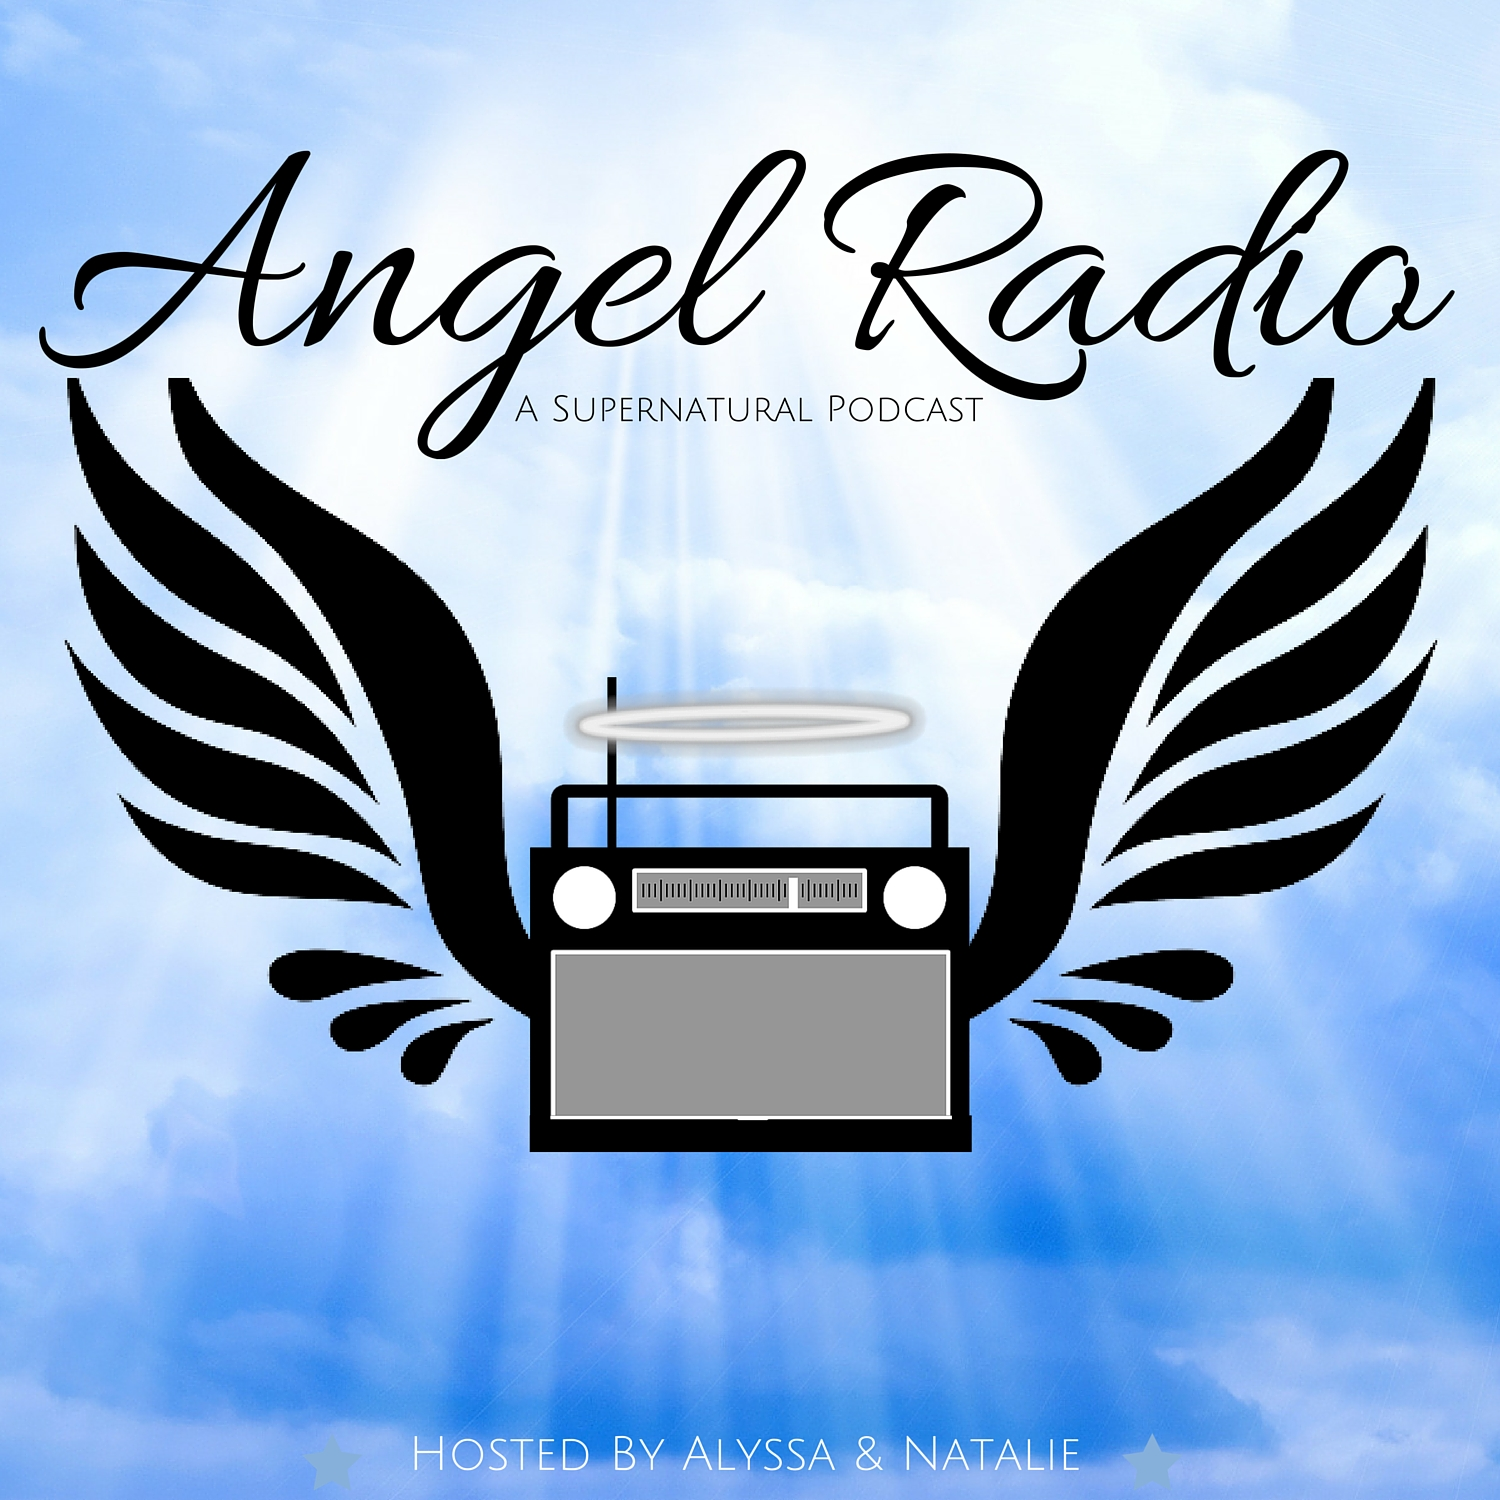 Angel Radio: A Supernatural Podcast